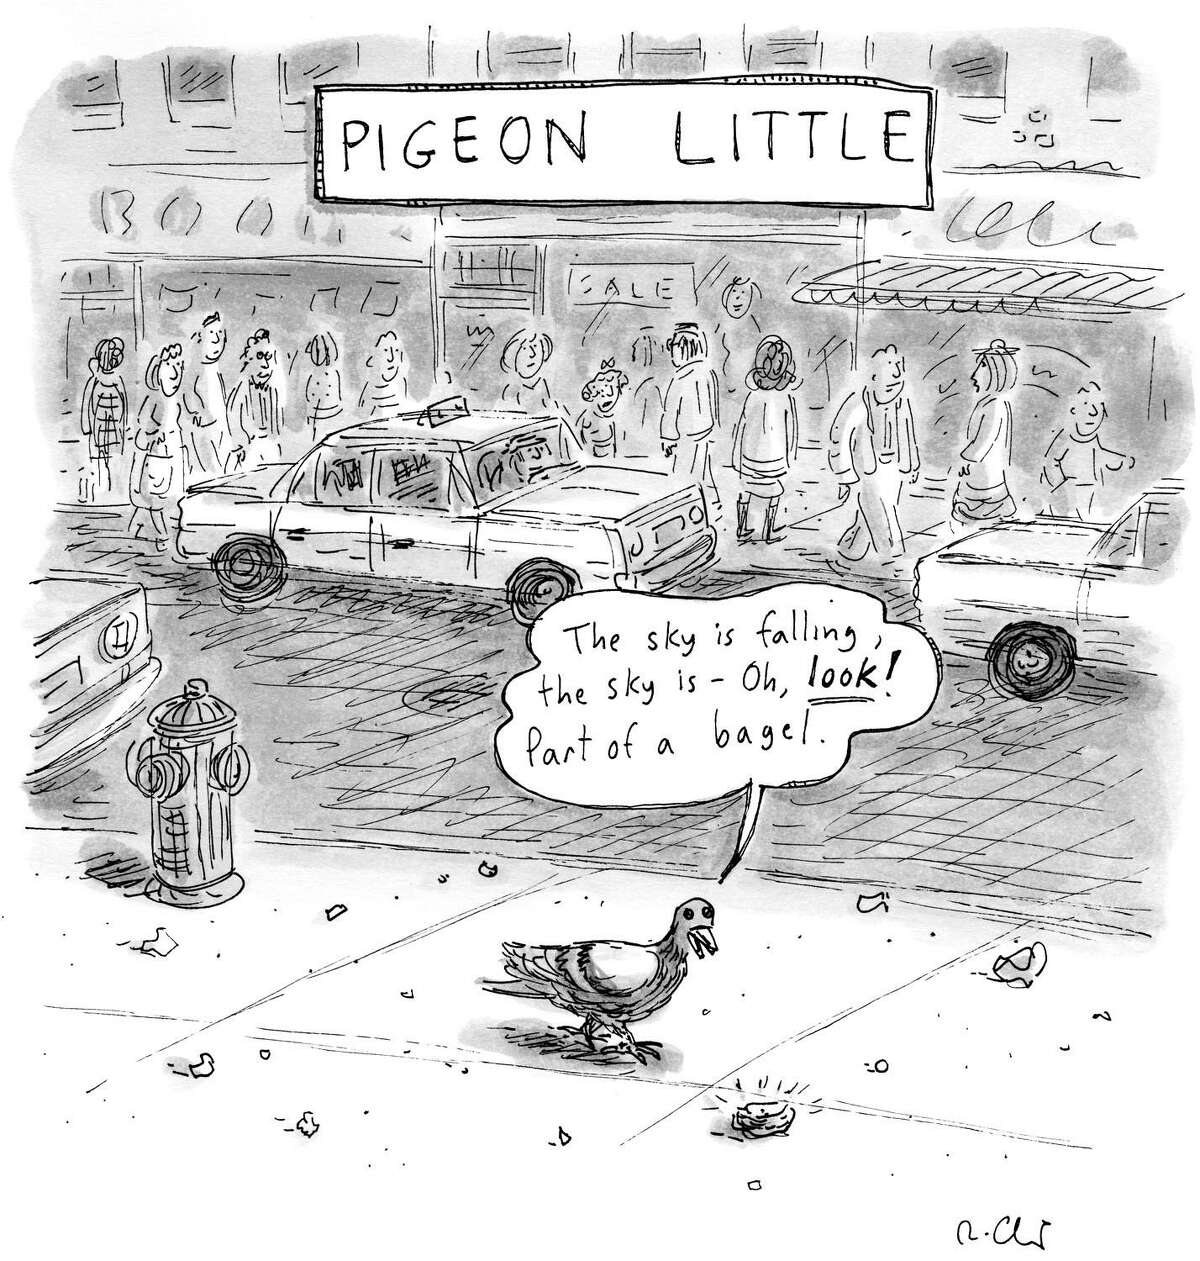 Roz Chast, a cartoonist whose work has been featured in The New Yorker and other publications, is appearing at Carol Corey Fine Art in Kent Aug. 14.